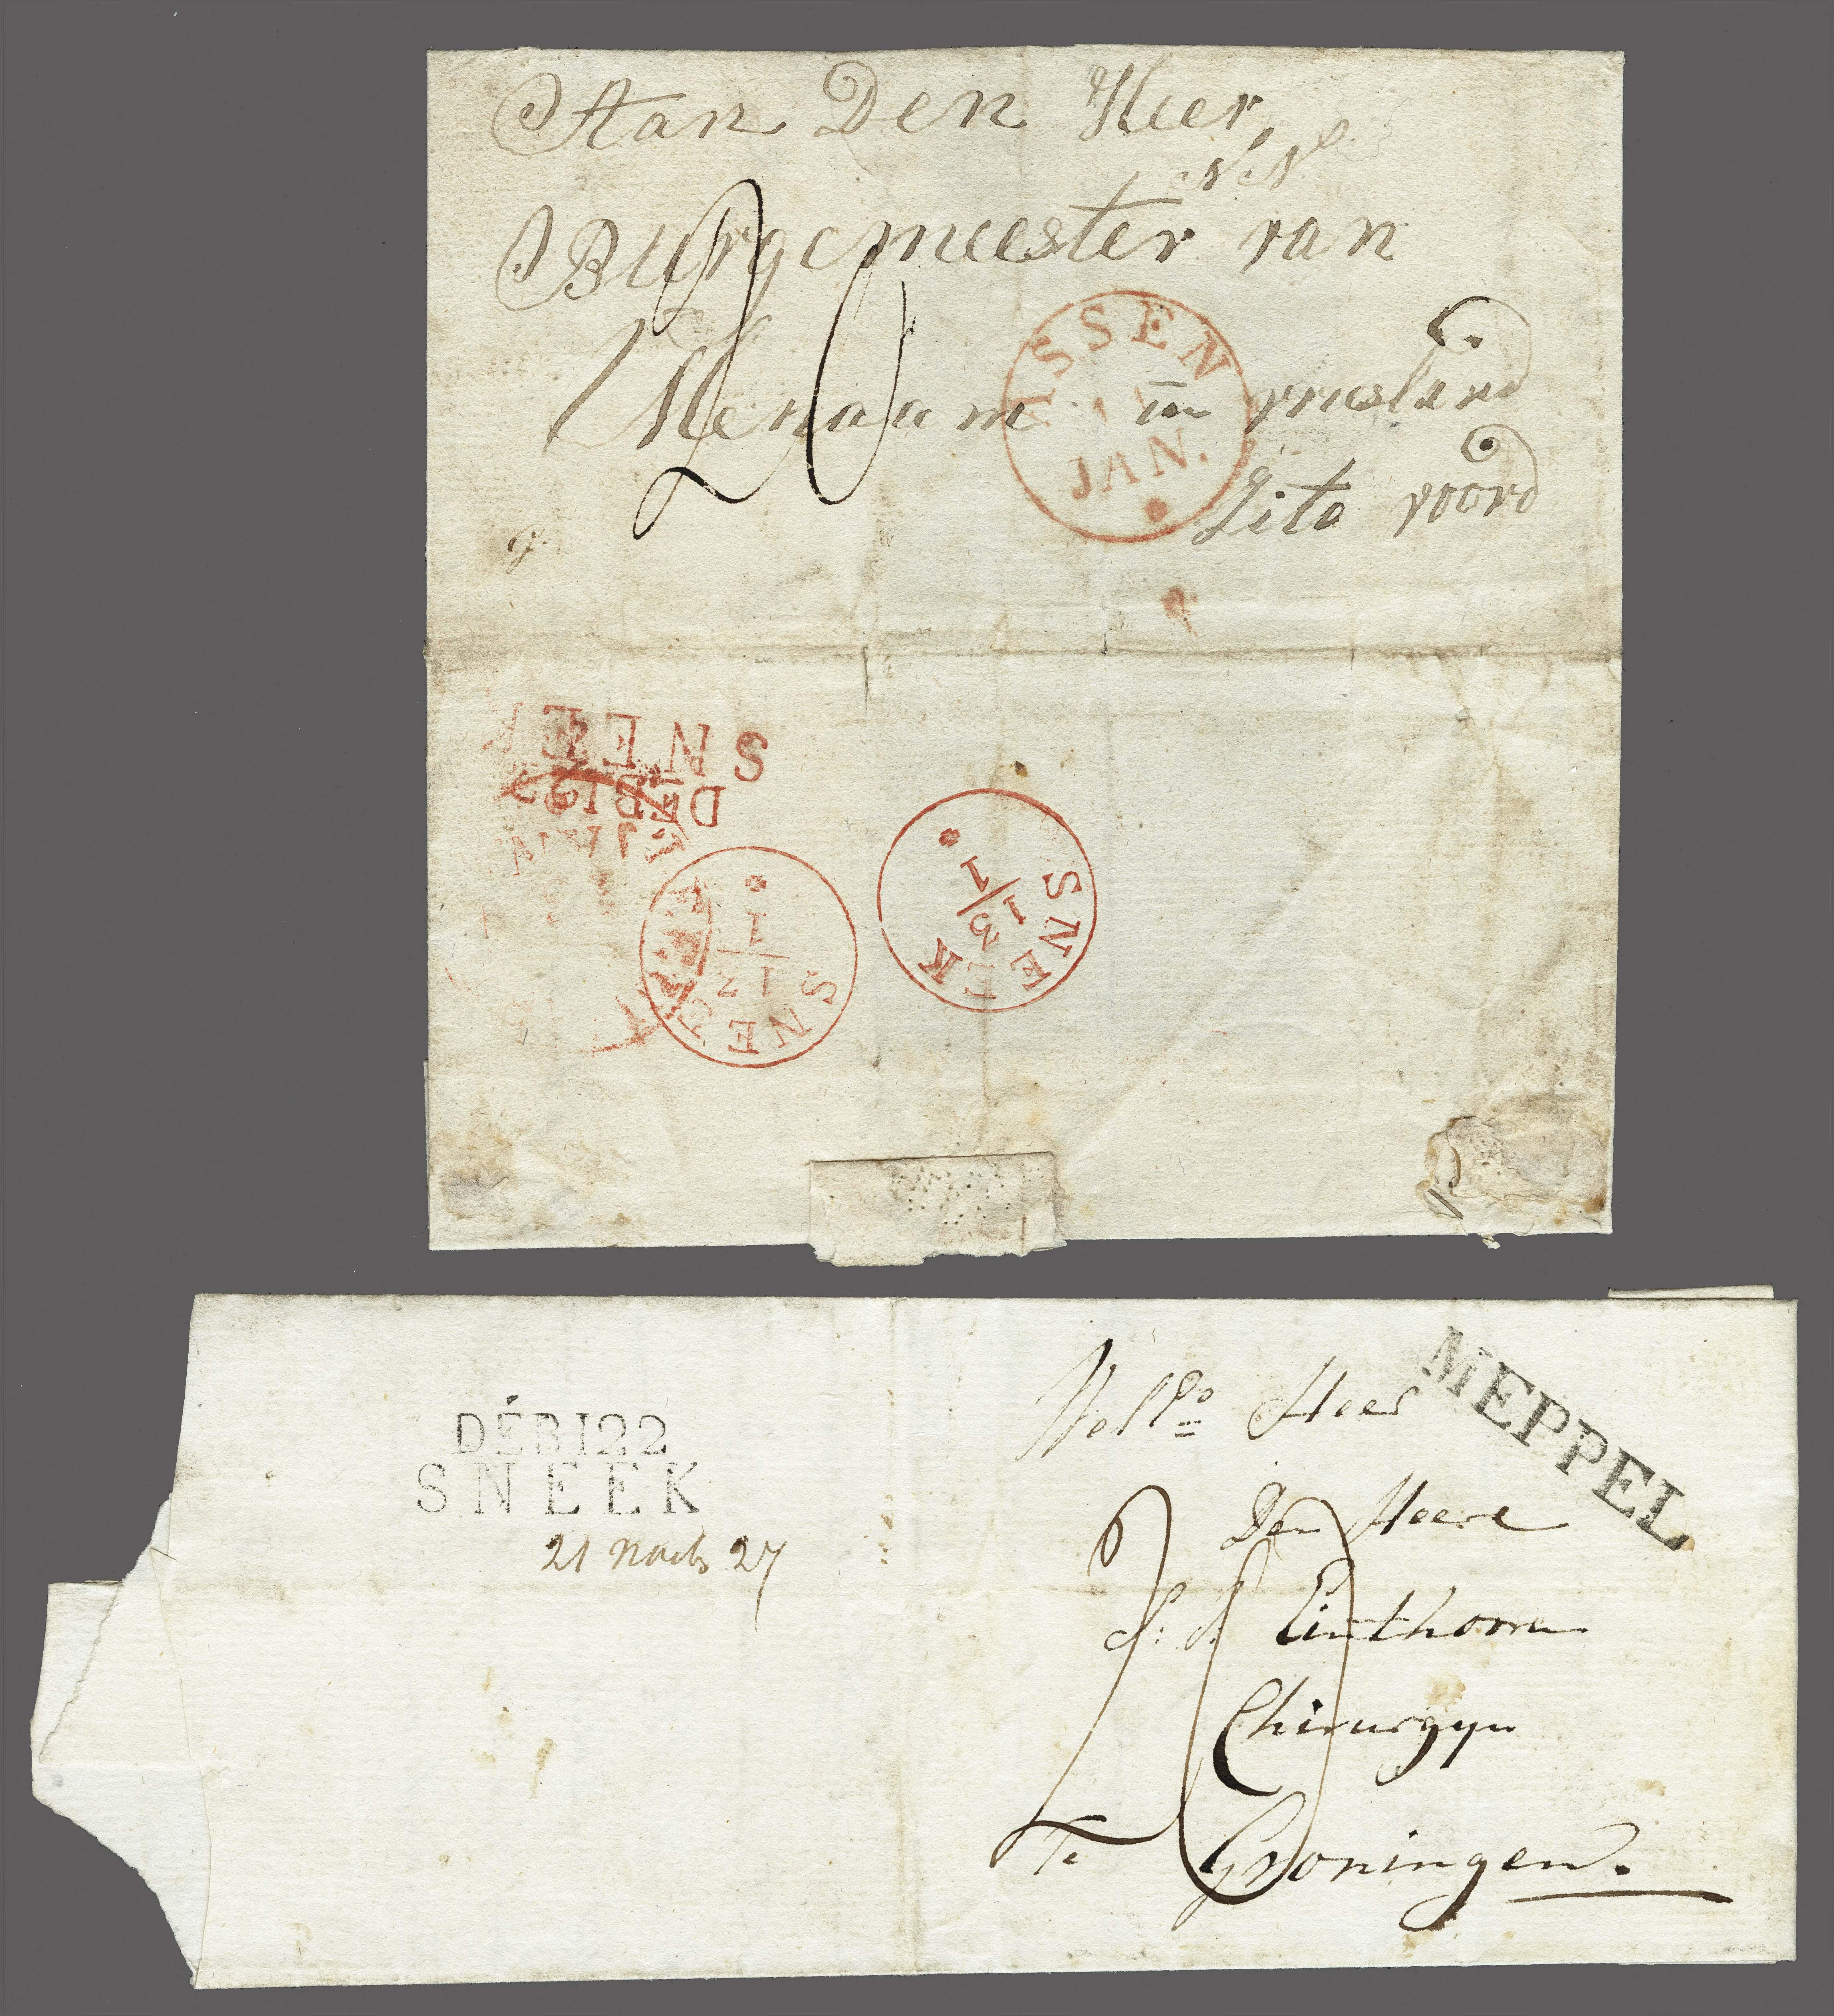 Lot 2399 - Netherlands and former colonies Netherlands -  Corinphila Veilingen Auction 250-253 - Day 3 - Netherlands and former colonies - Single lots & Picture postcards